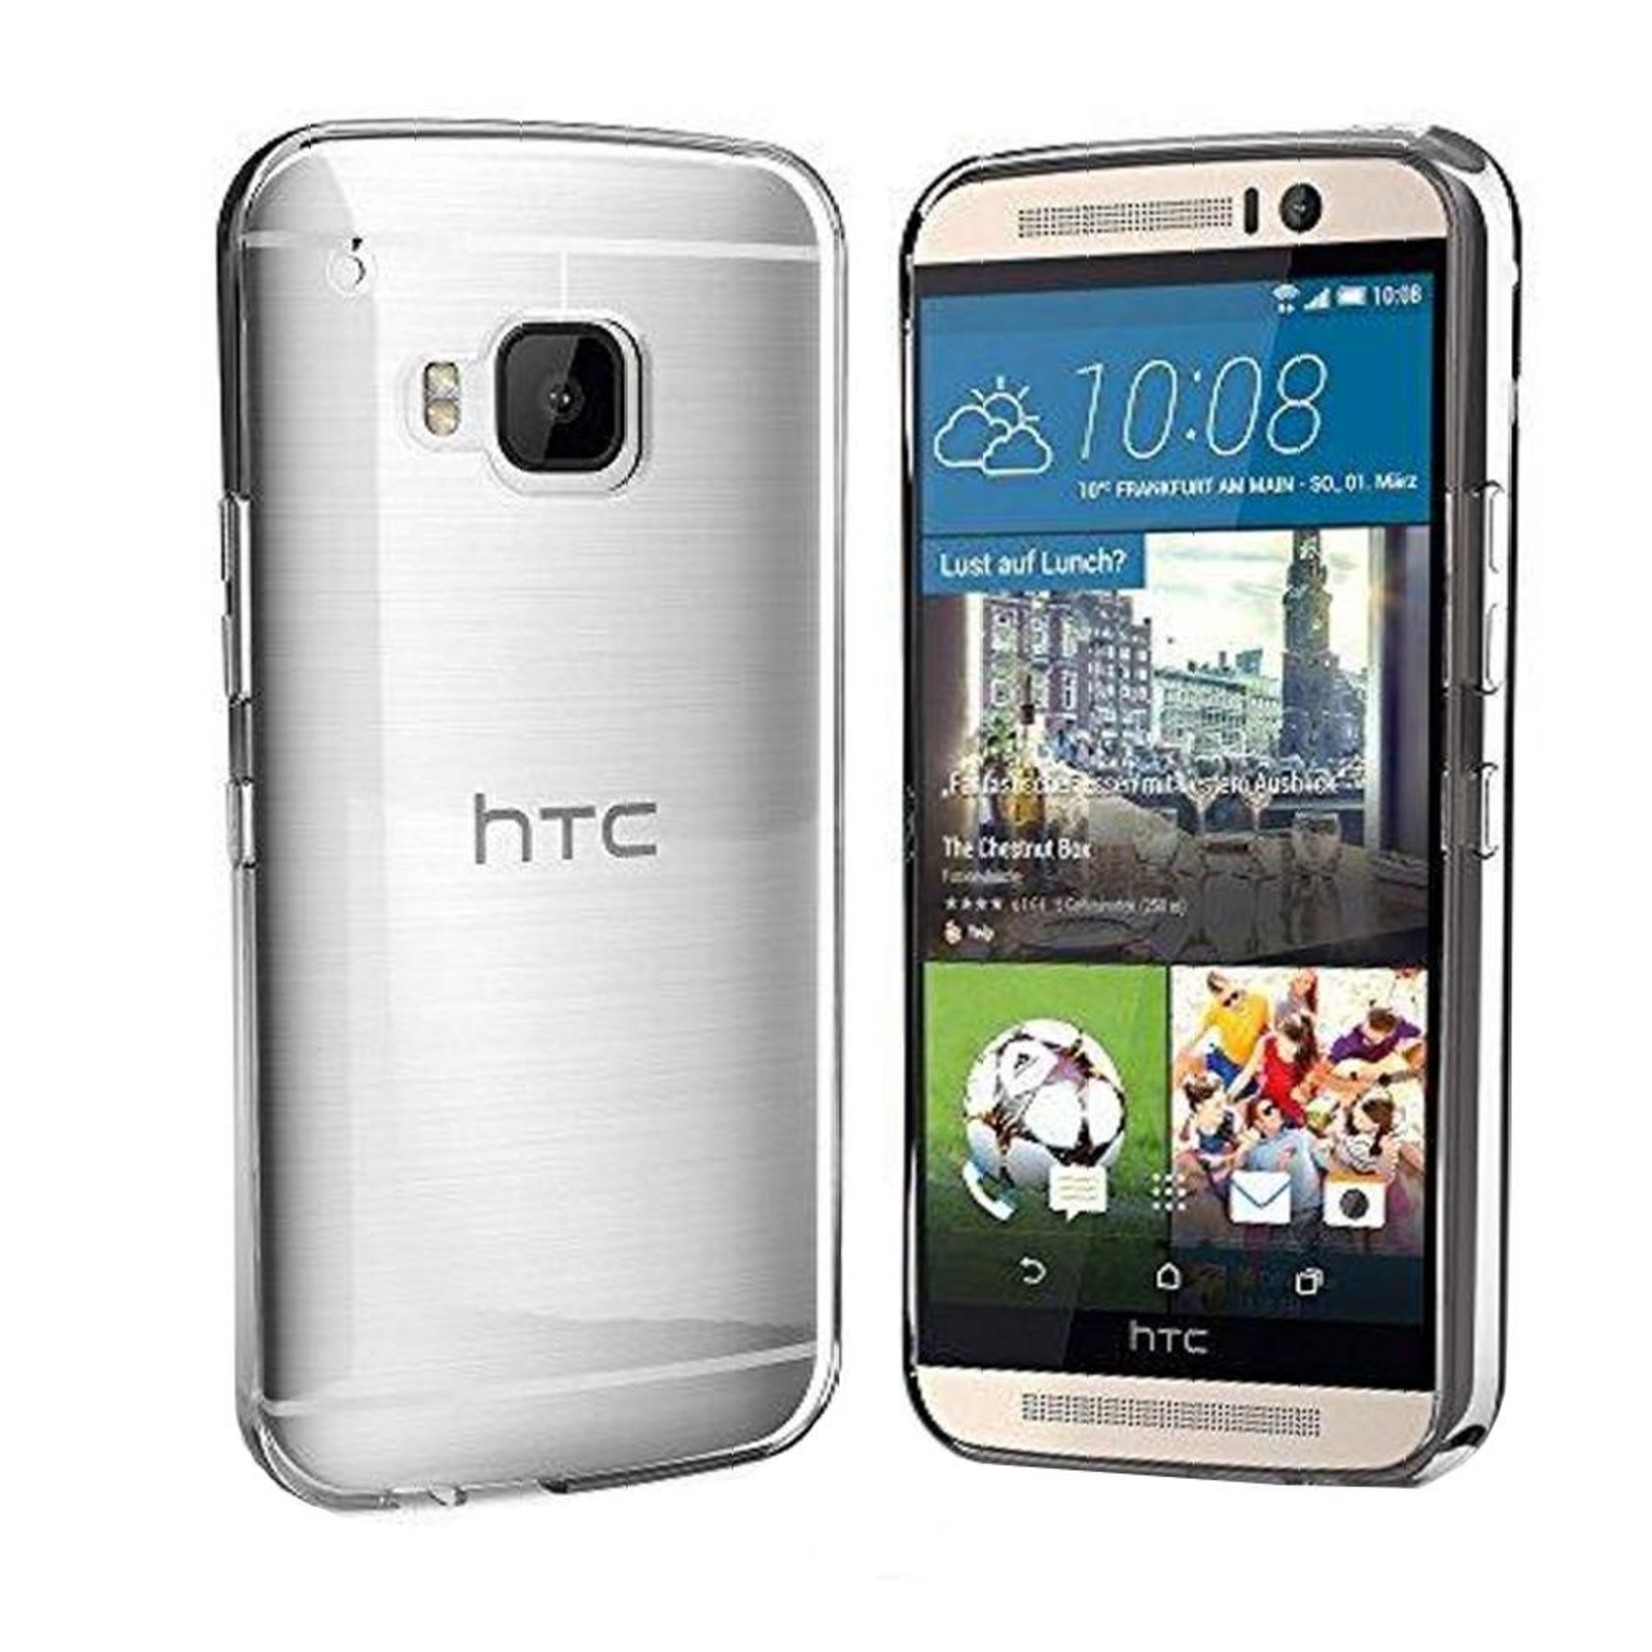 Colorfone Hoesje CoolSkin3T voor HTC One S9 Tr. Wit